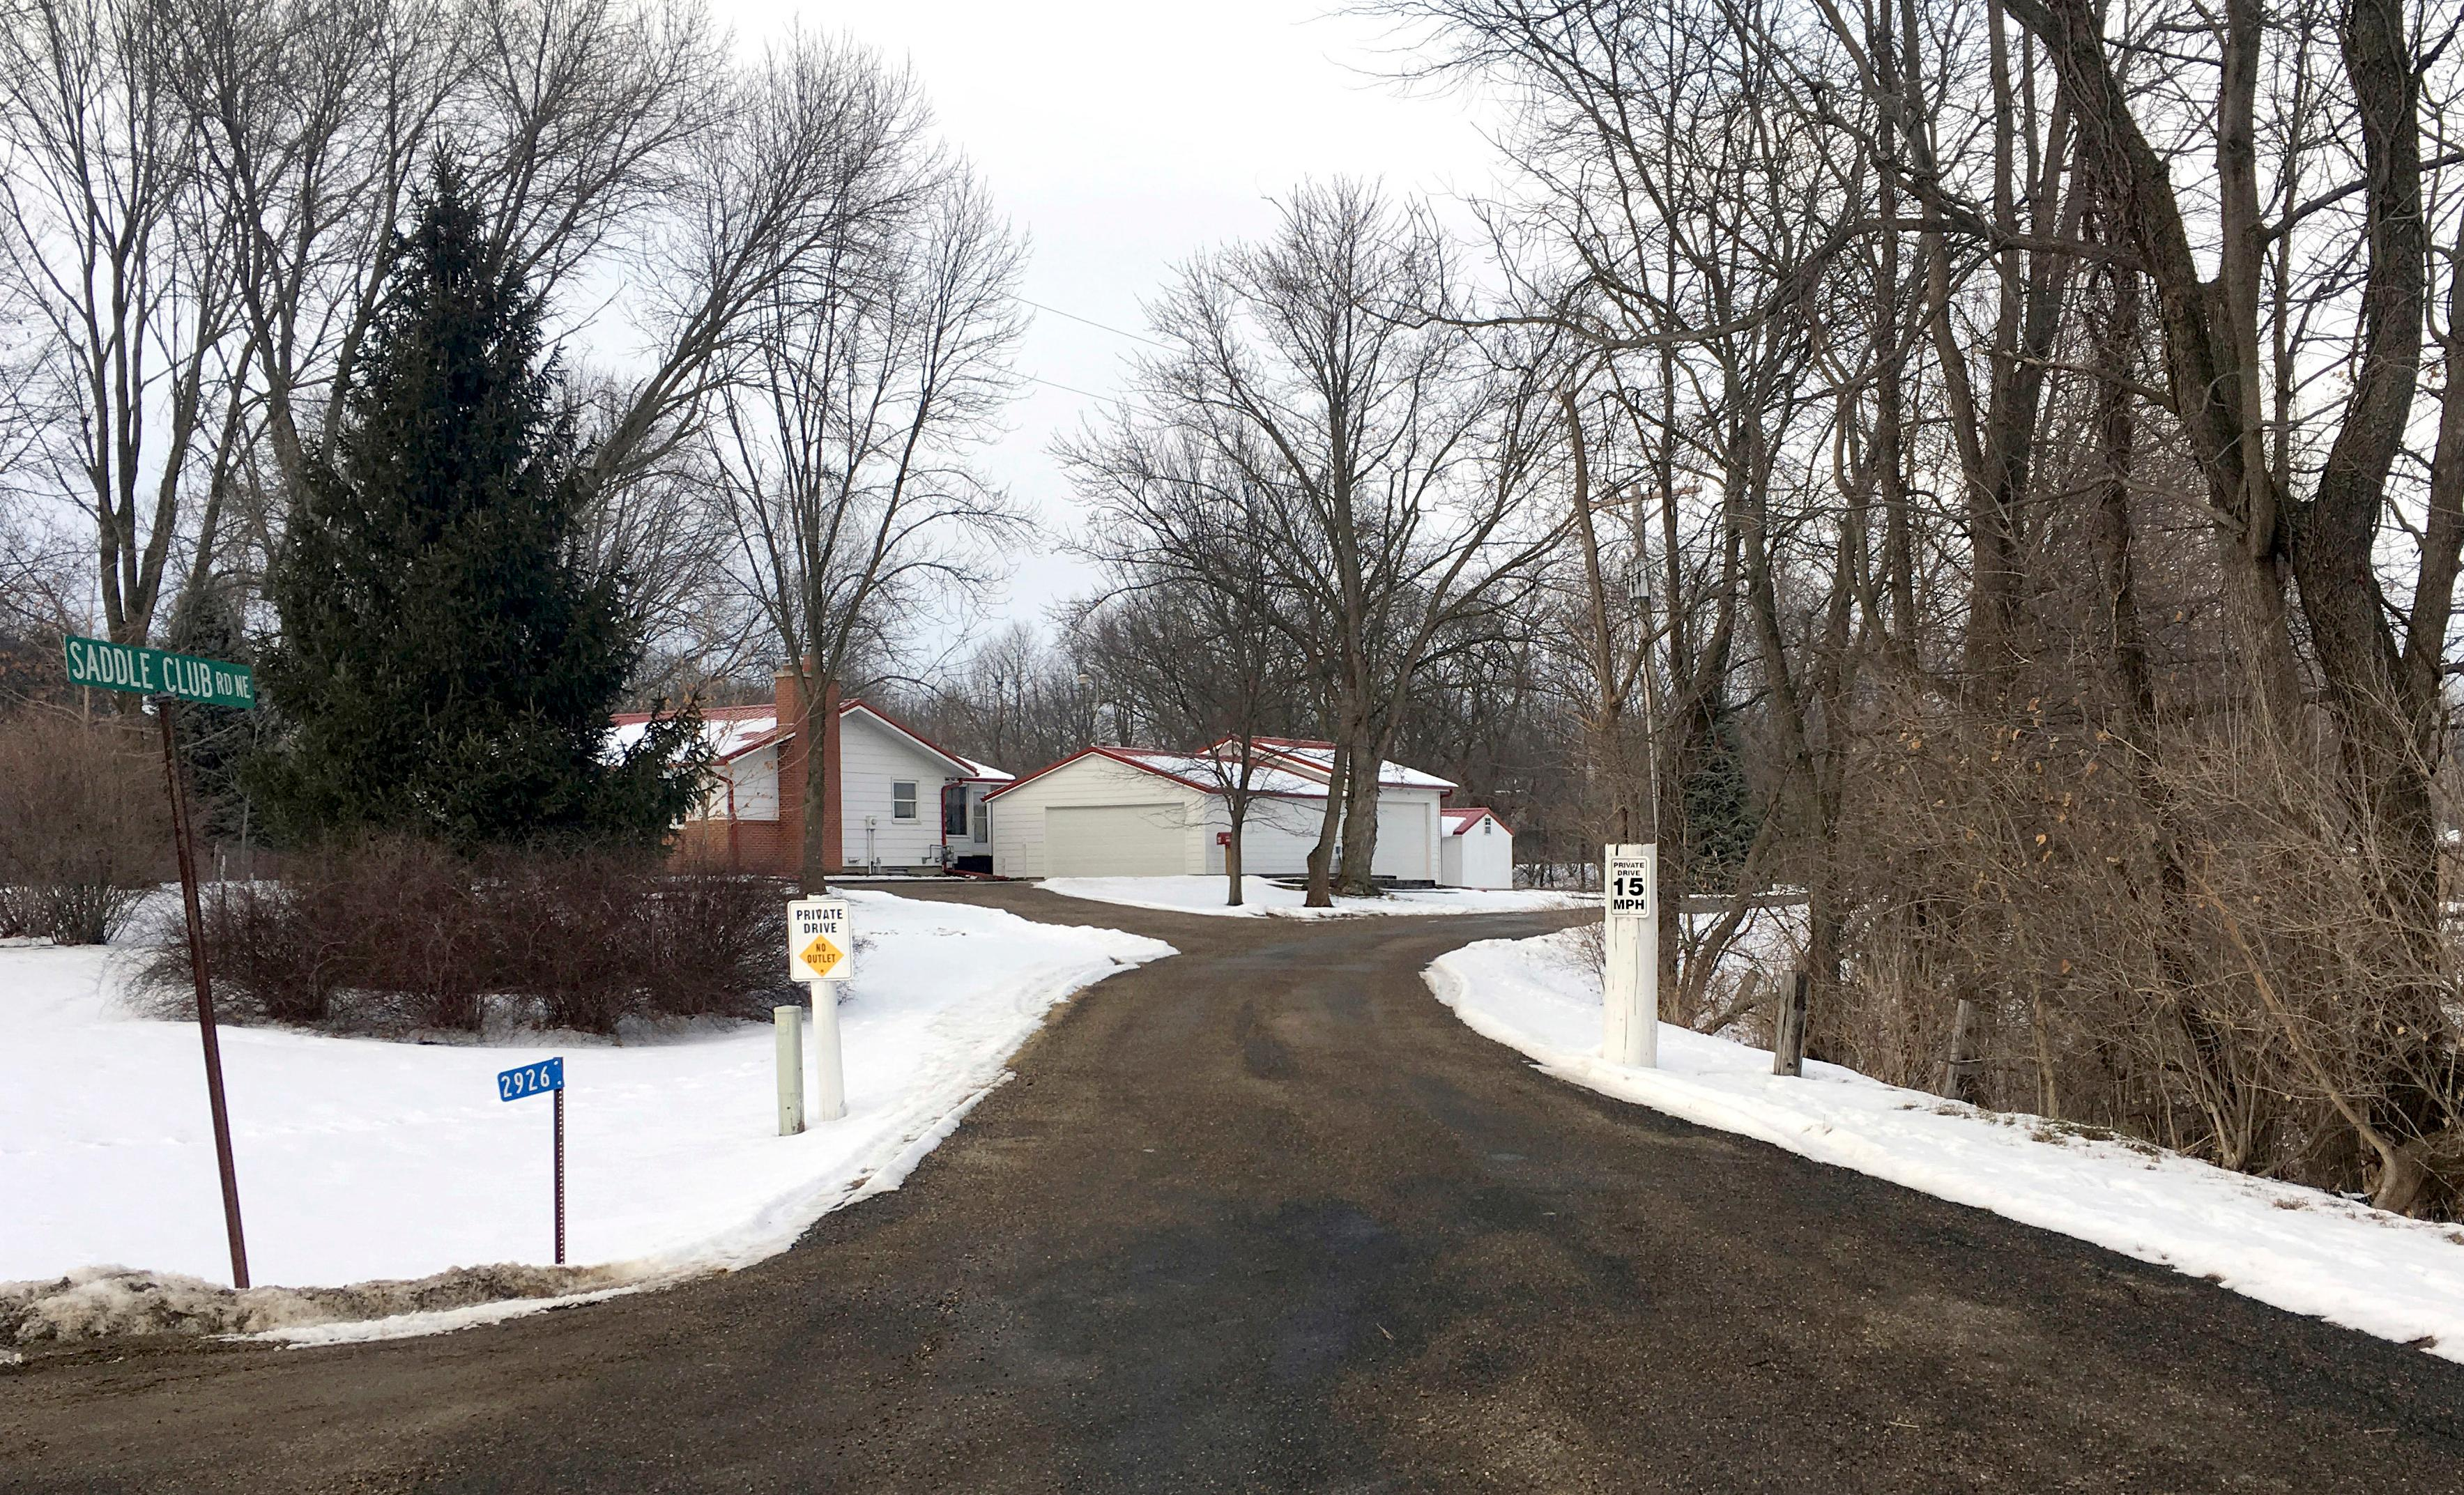 This Tuesday, Jan . 9, 2018, photo shows the entrance to Saddle Club Road in Iowa City, Iowa. The surface of the private road and who pays for its maintenance is one of many disputes that has pitted Iowa football head coach Kirk Ferentz and his wife Mary against the three other families who live along it. A trial is scheduled for next month over whether trees and landscaping items installed by the Ferentzes along the road amount to a trespass violation. (AP Photo/Ryan J. Foley)